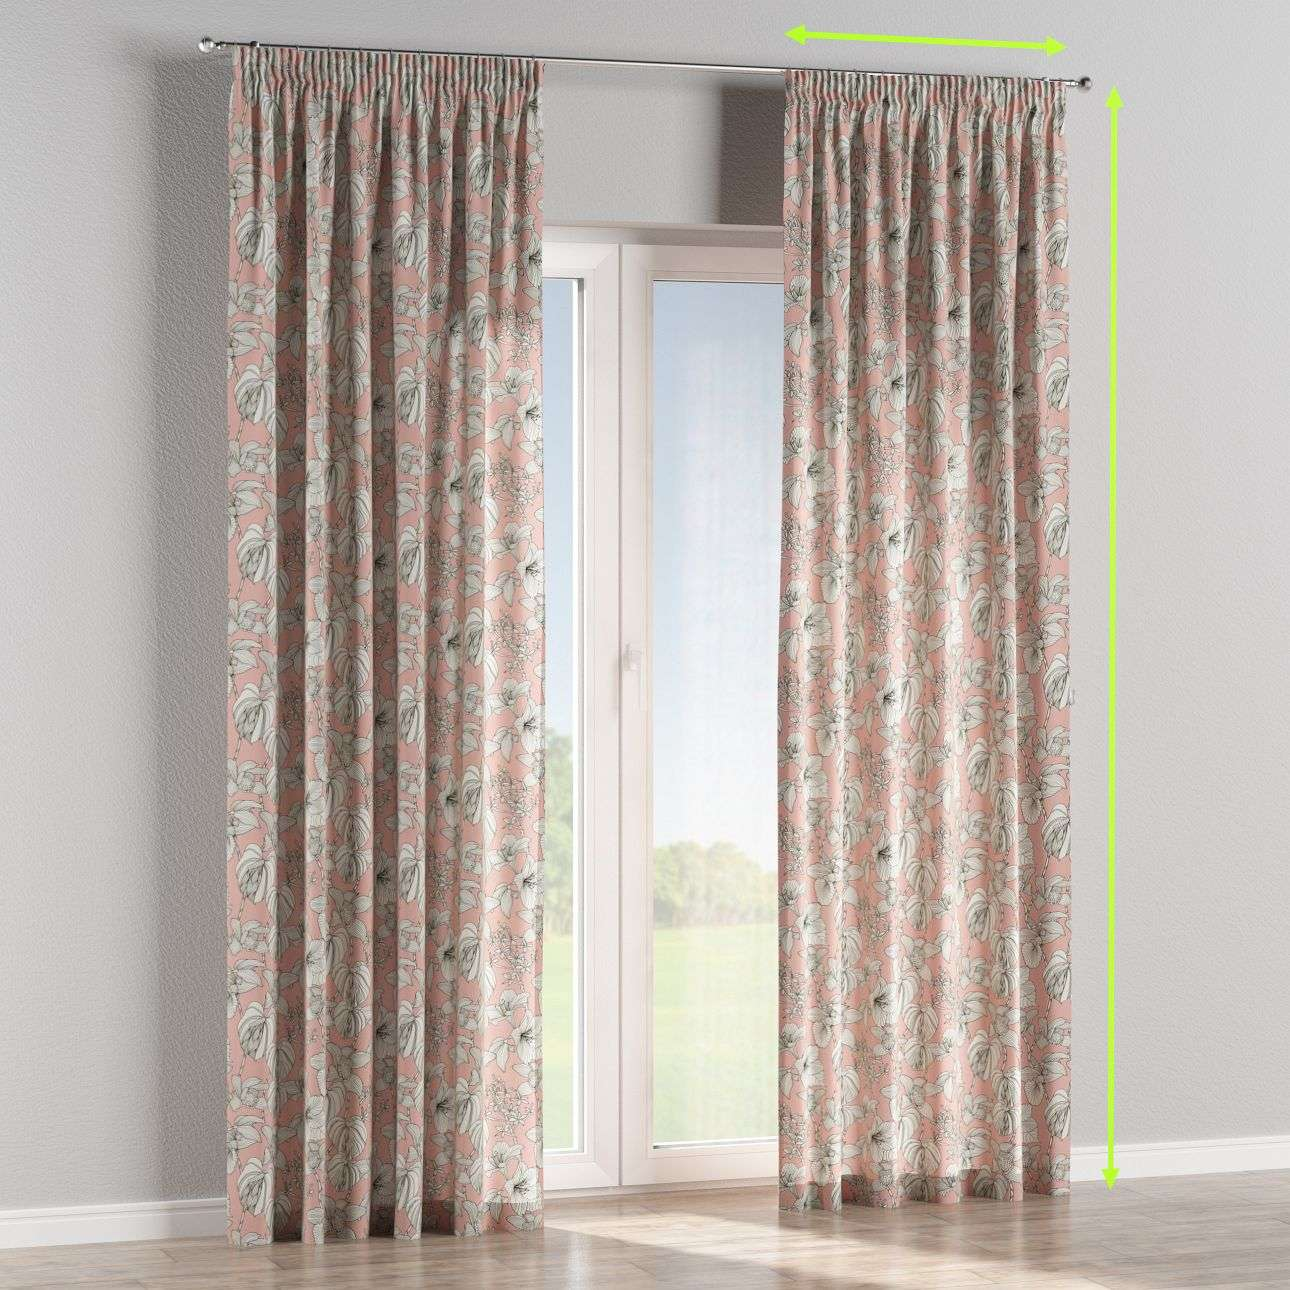 Pencil pleat curtains in collection Brooklyn, fabric: 137-74